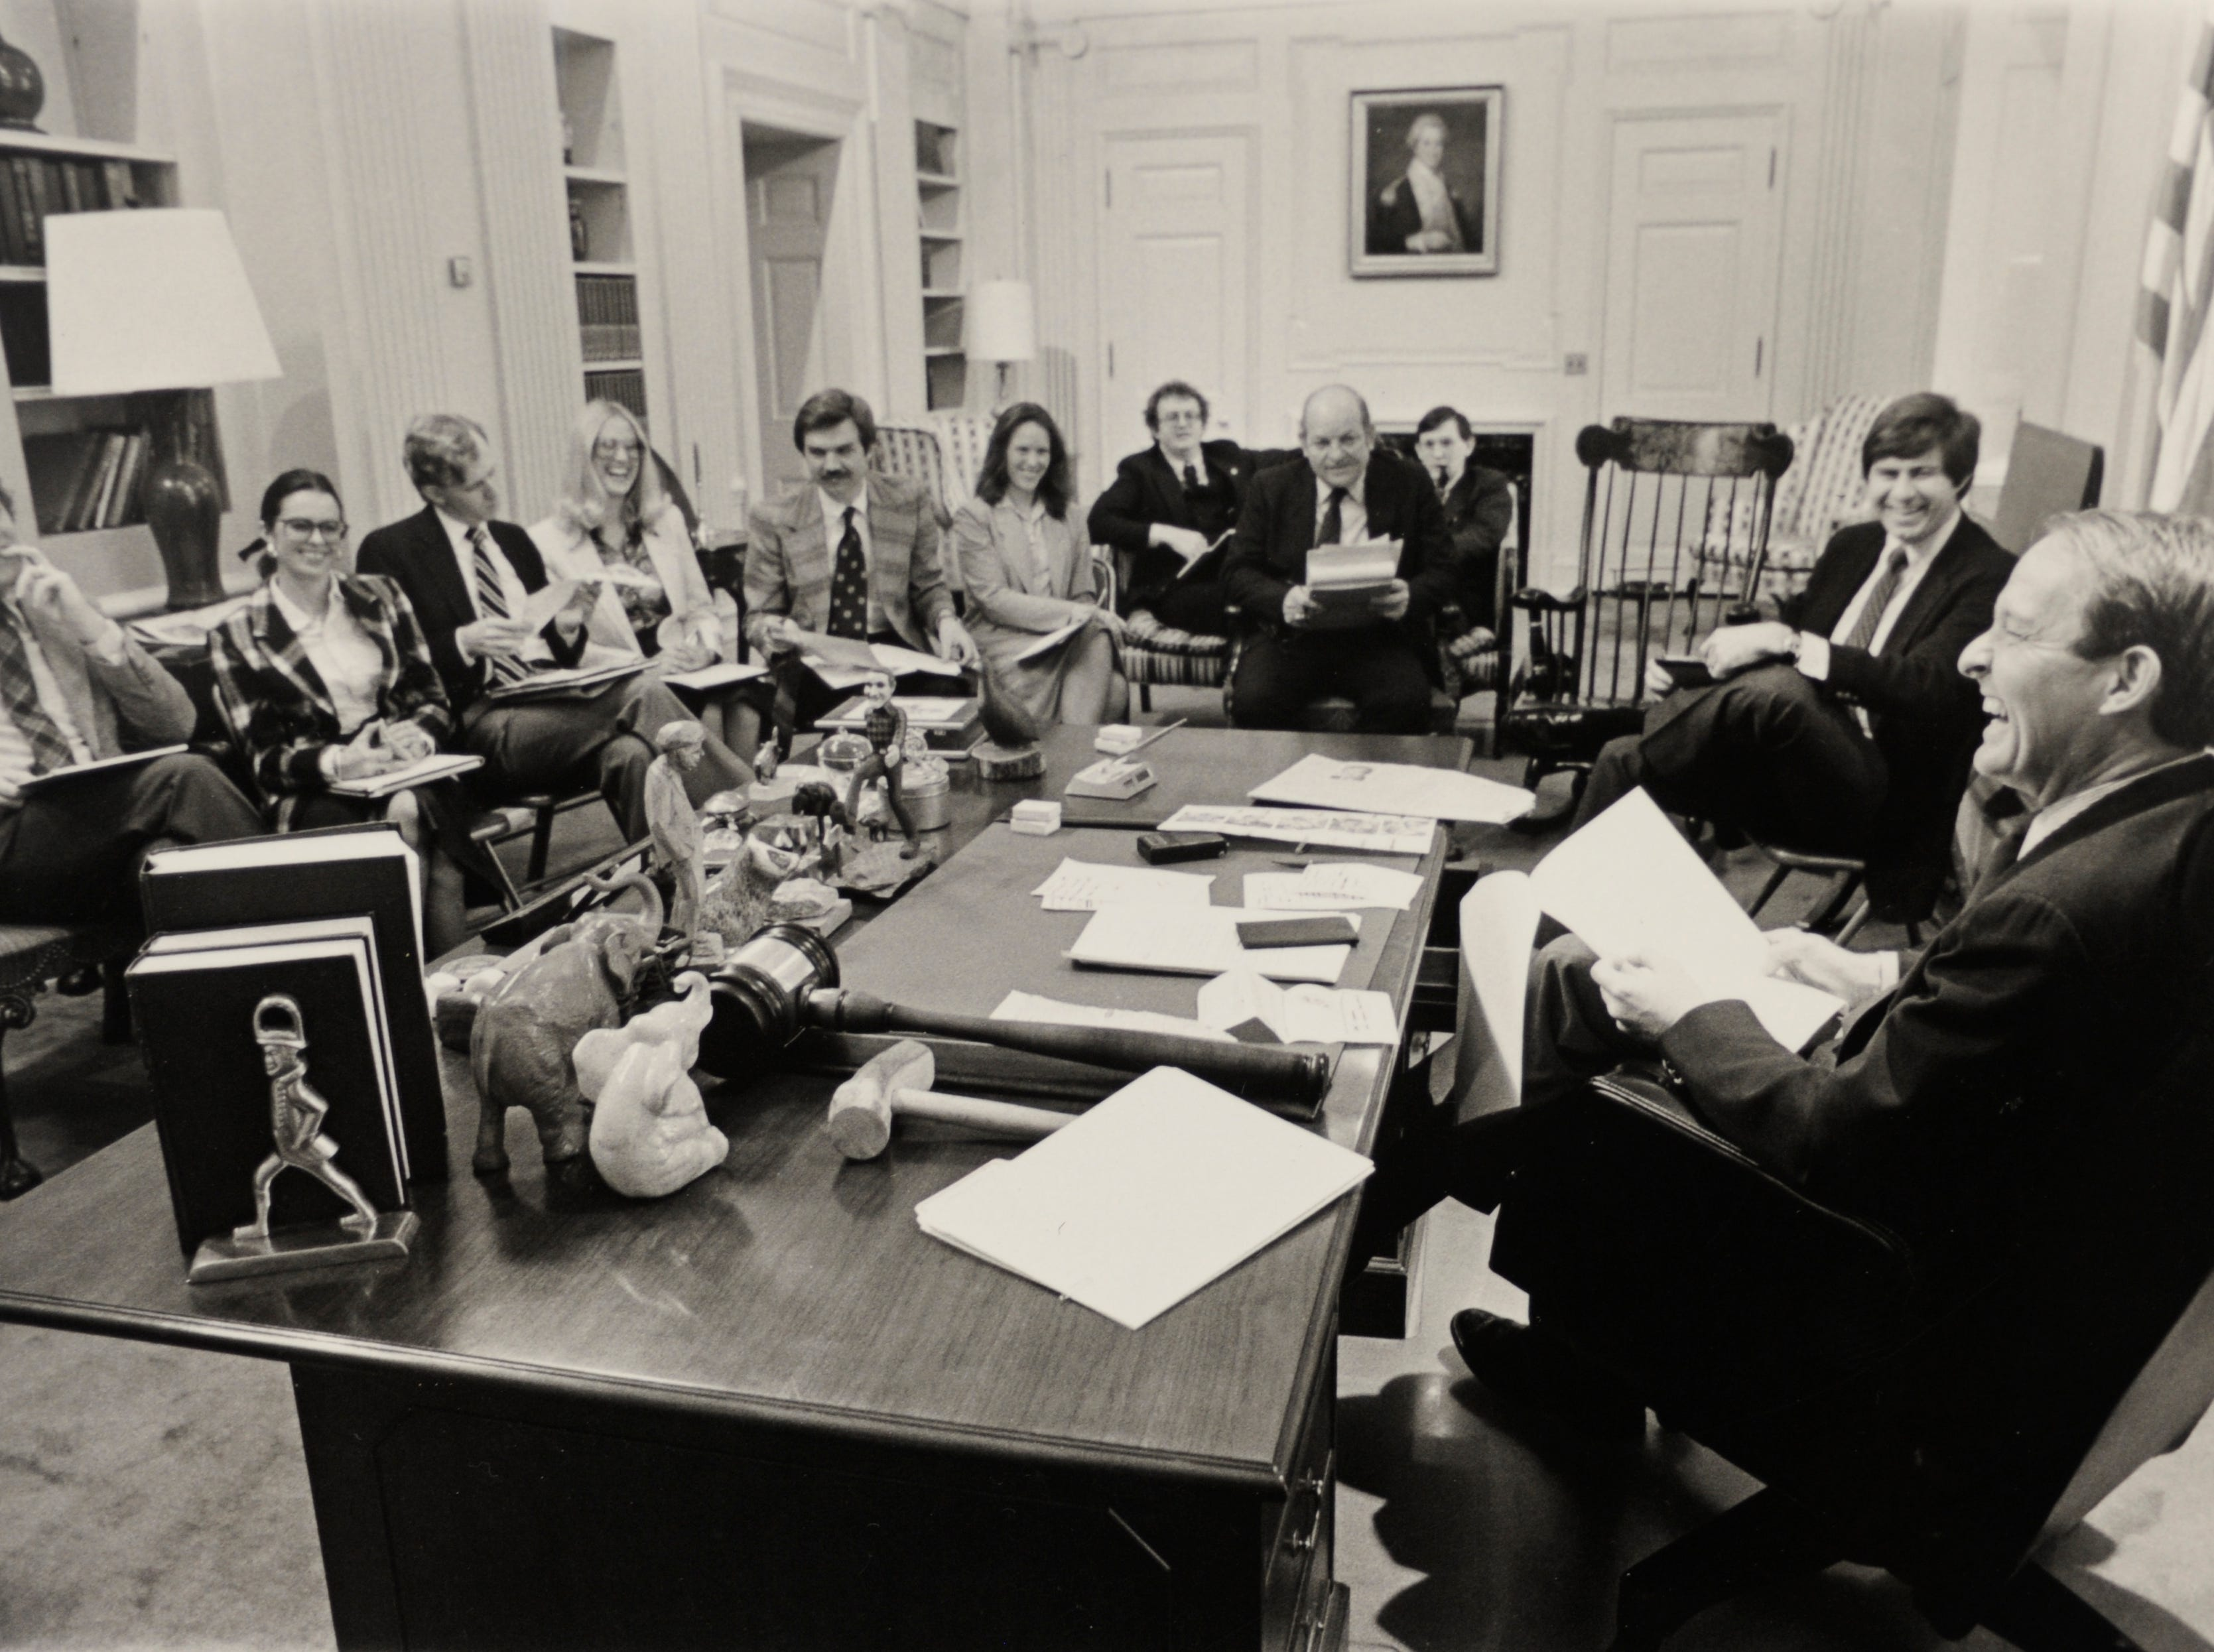 Susan Richardson Williams, second from left, during a staff meeting of Gov. Lamar Alexander when she served as his special assistant in 1980.